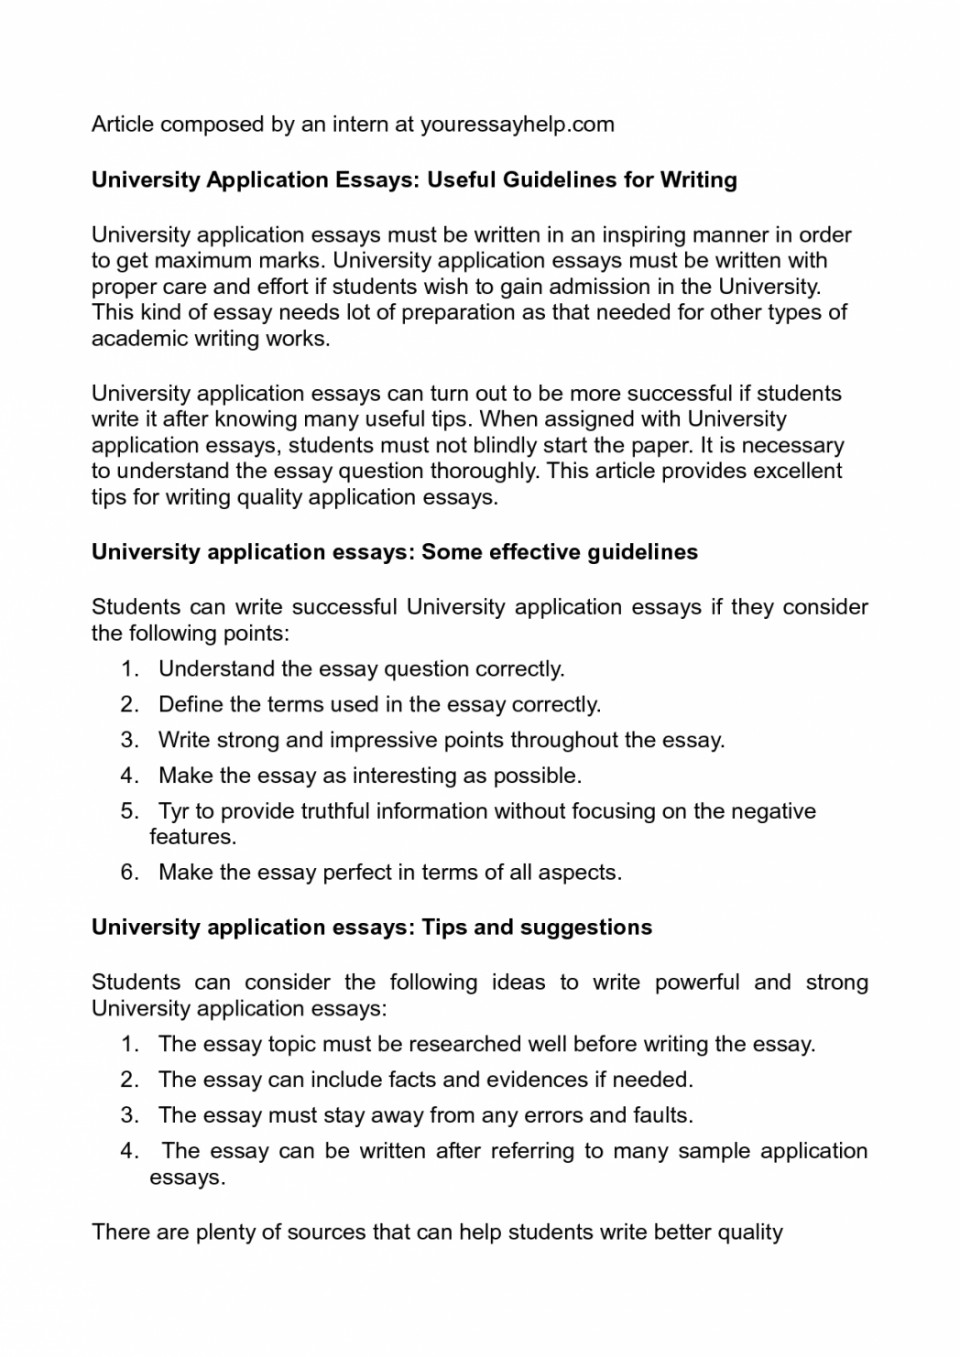 005 Define Argumentative Essay Top Writing Site For University Definition Argument Topics 1048x1482 Fantastic Format & Examples Claim Dictionary 960